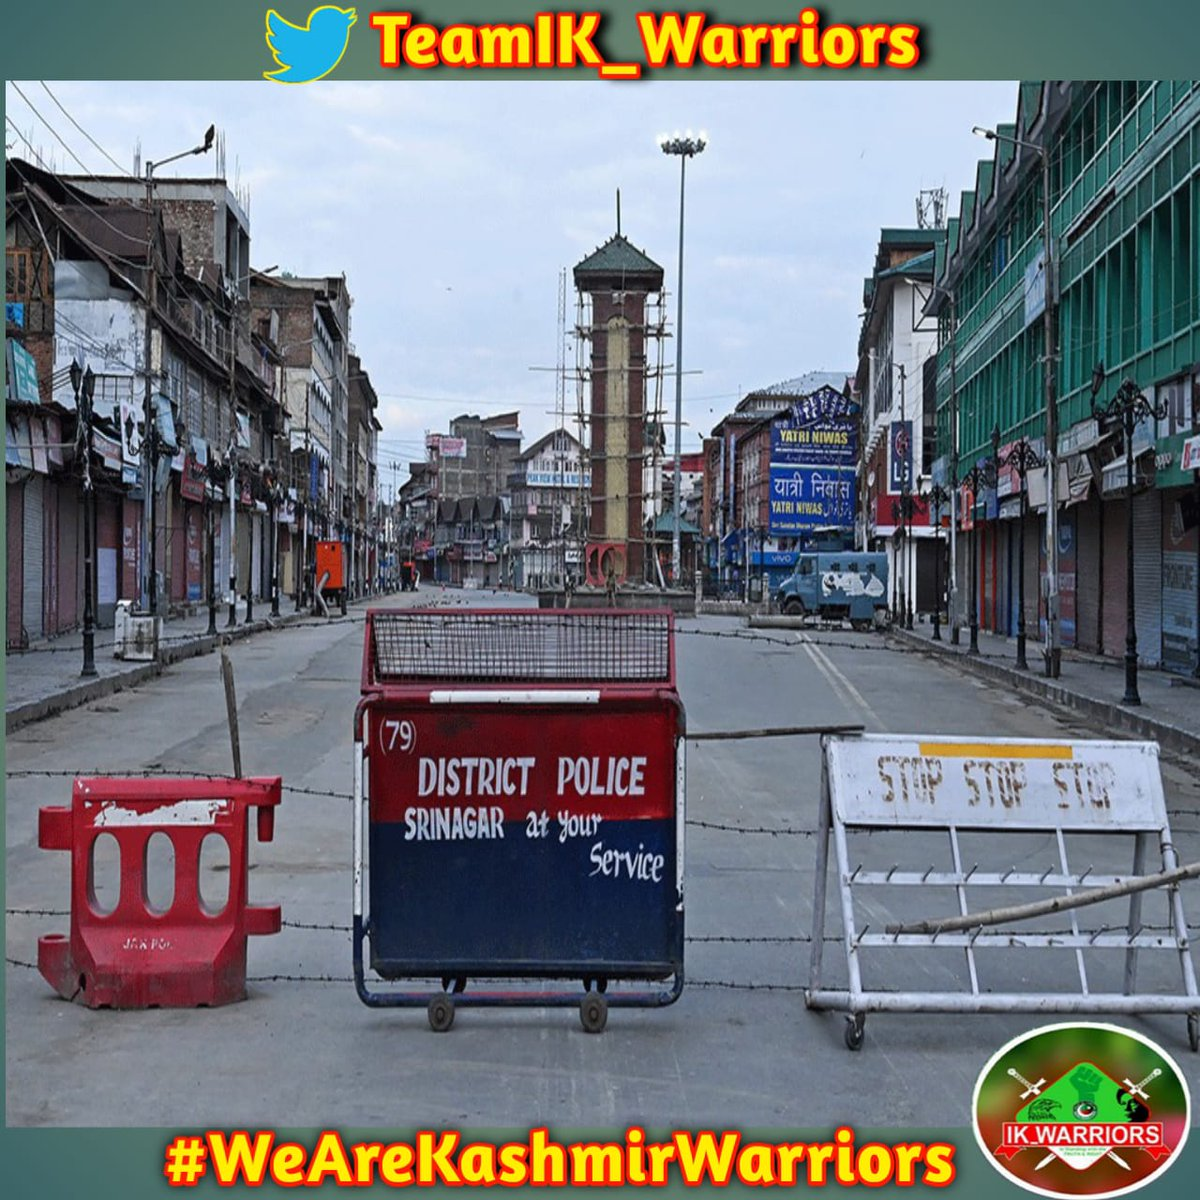 situation continues to remain almost unchanged in the Kashmir Valley and parts of Jammu region on the 125nd day of lockdown and military siege.  #WeAreKashmirWarriors <br>http://pic.twitter.com/6RjZyrxw5m